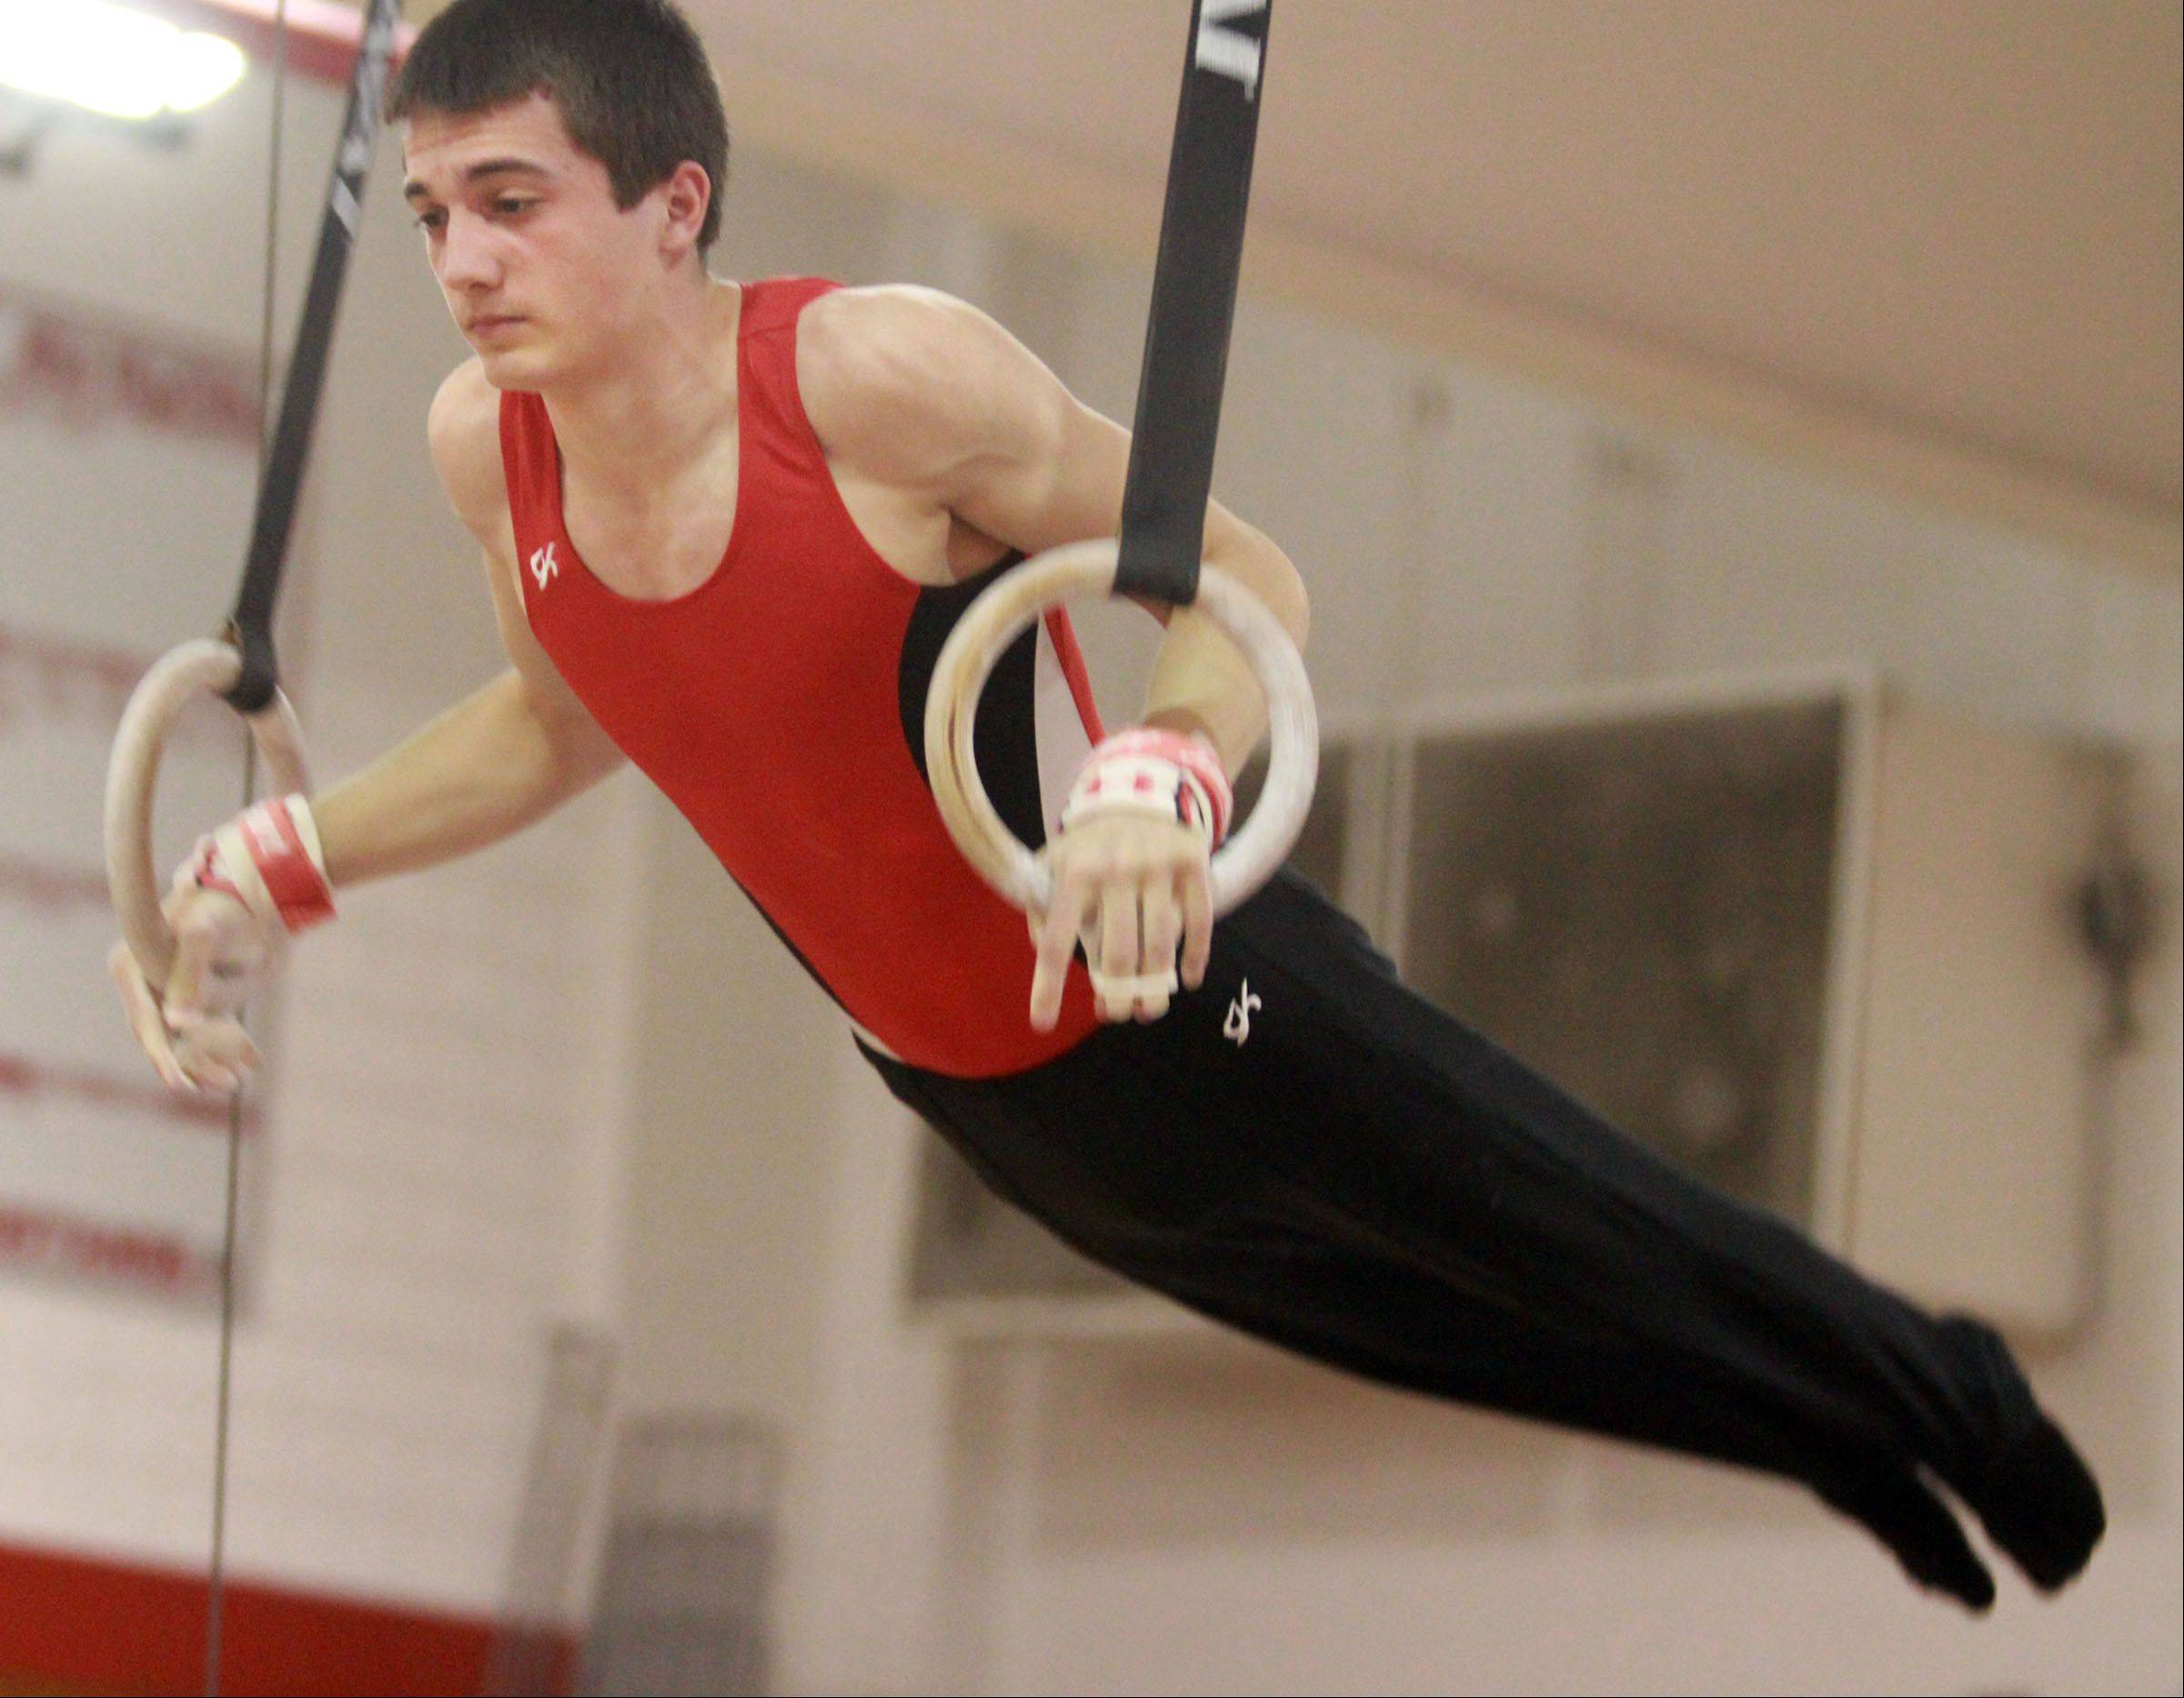 Palatine's Lucas Price competes on the still rings at the Mundelein boys gymnastics sectional on Saturday.